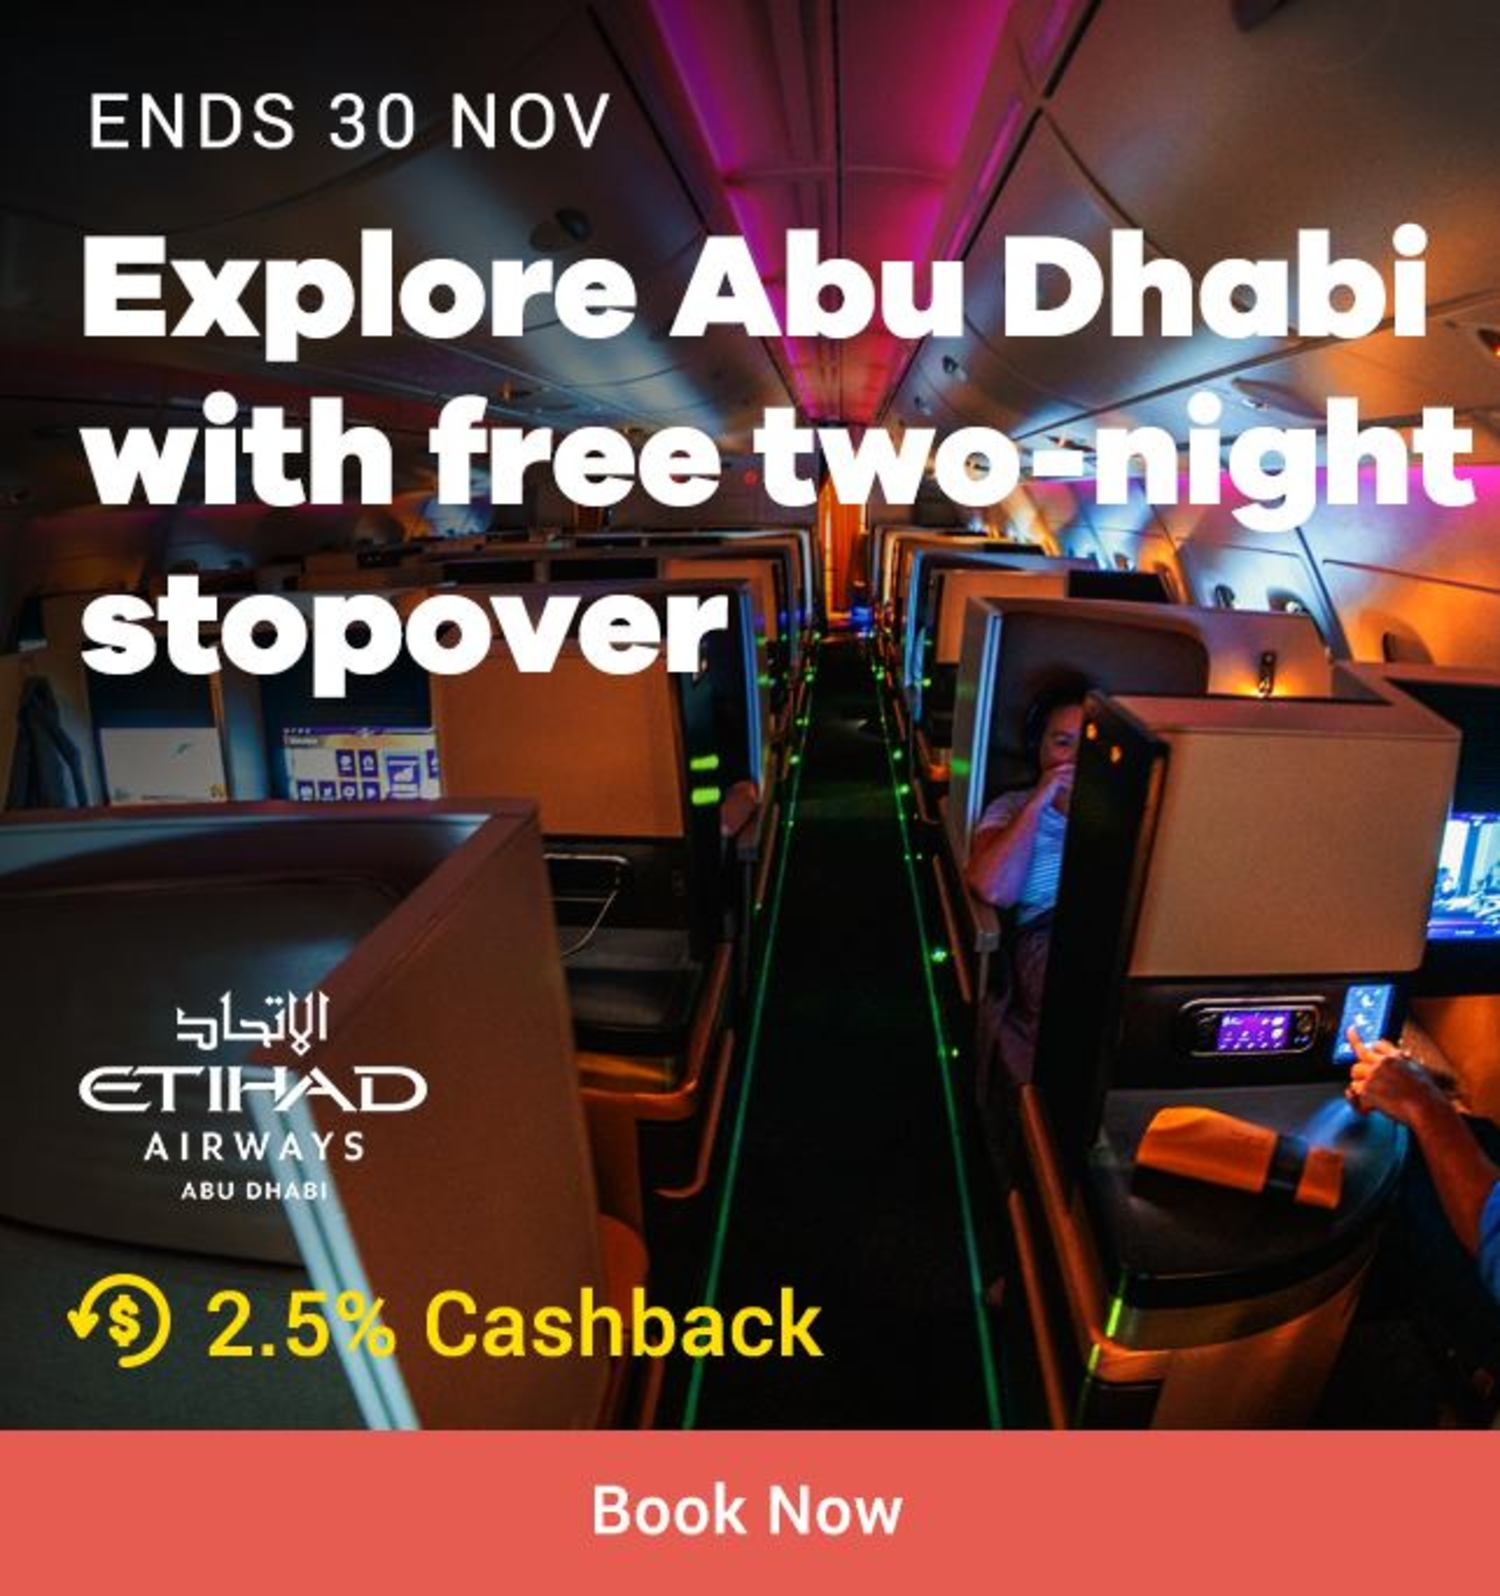 Etihad Airways: Explore Abu Dhabi with free two night stopover